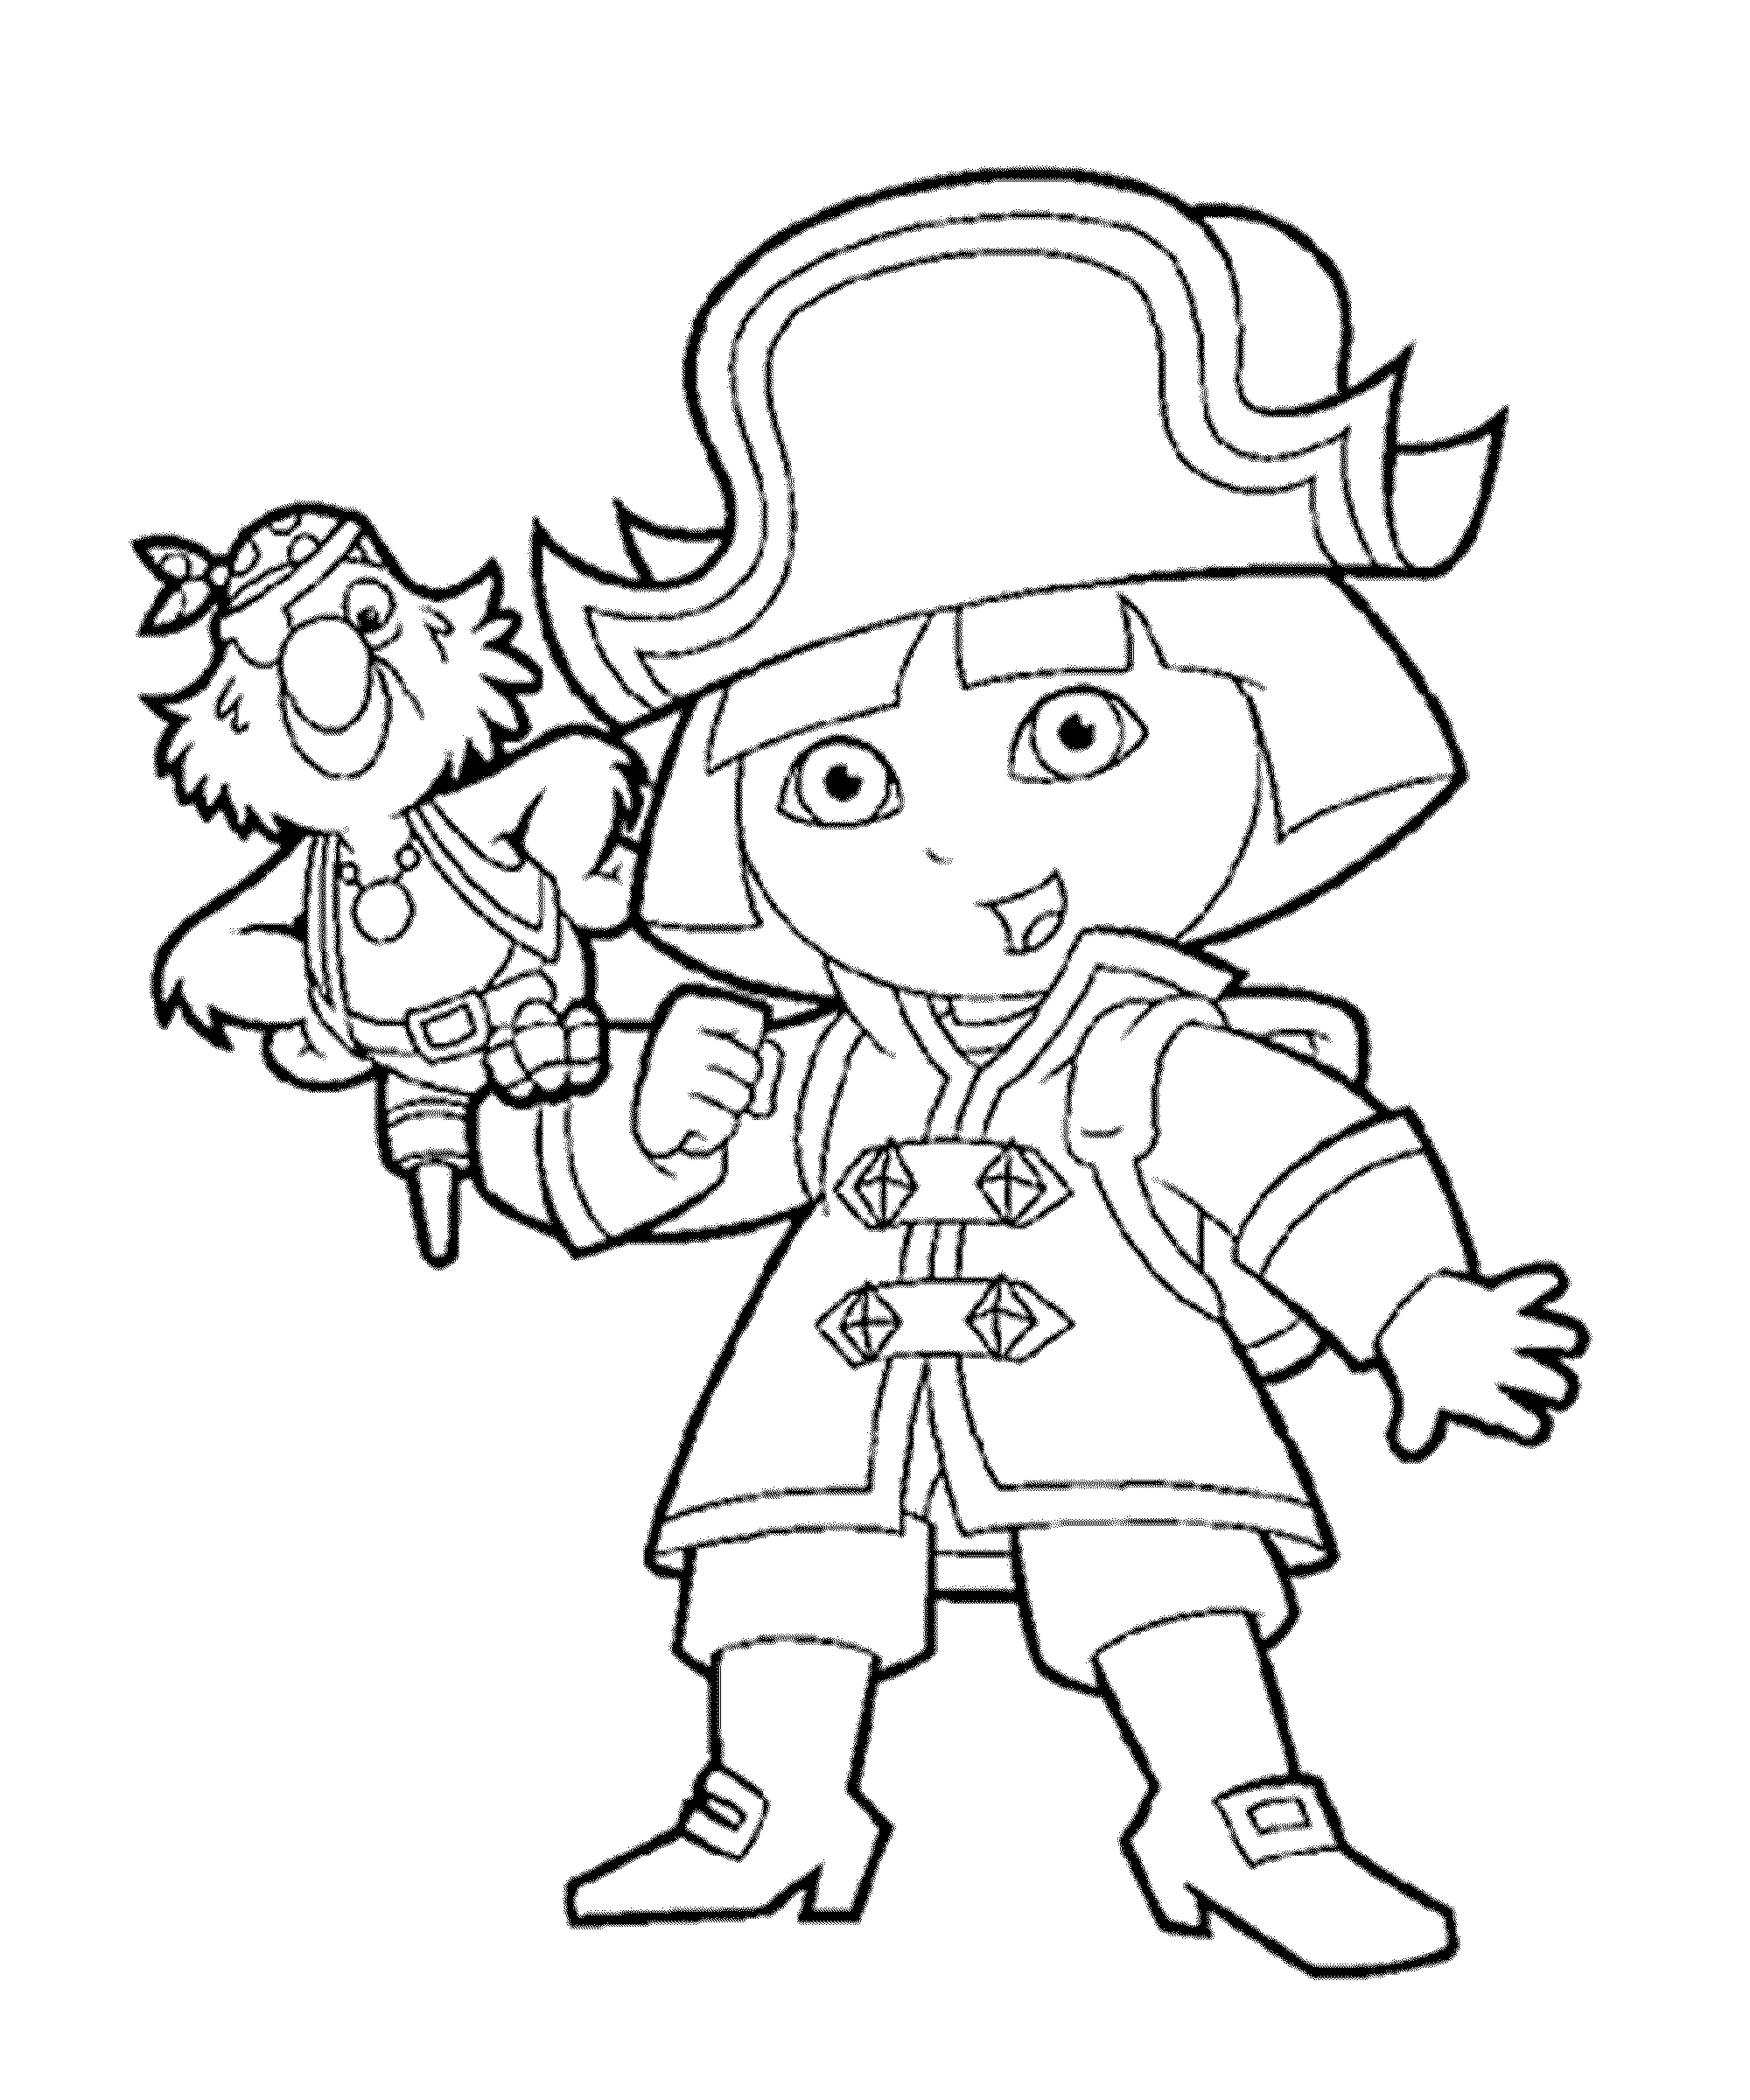 dora color sheets print download dora coloring pages to learn new things color sheets dora